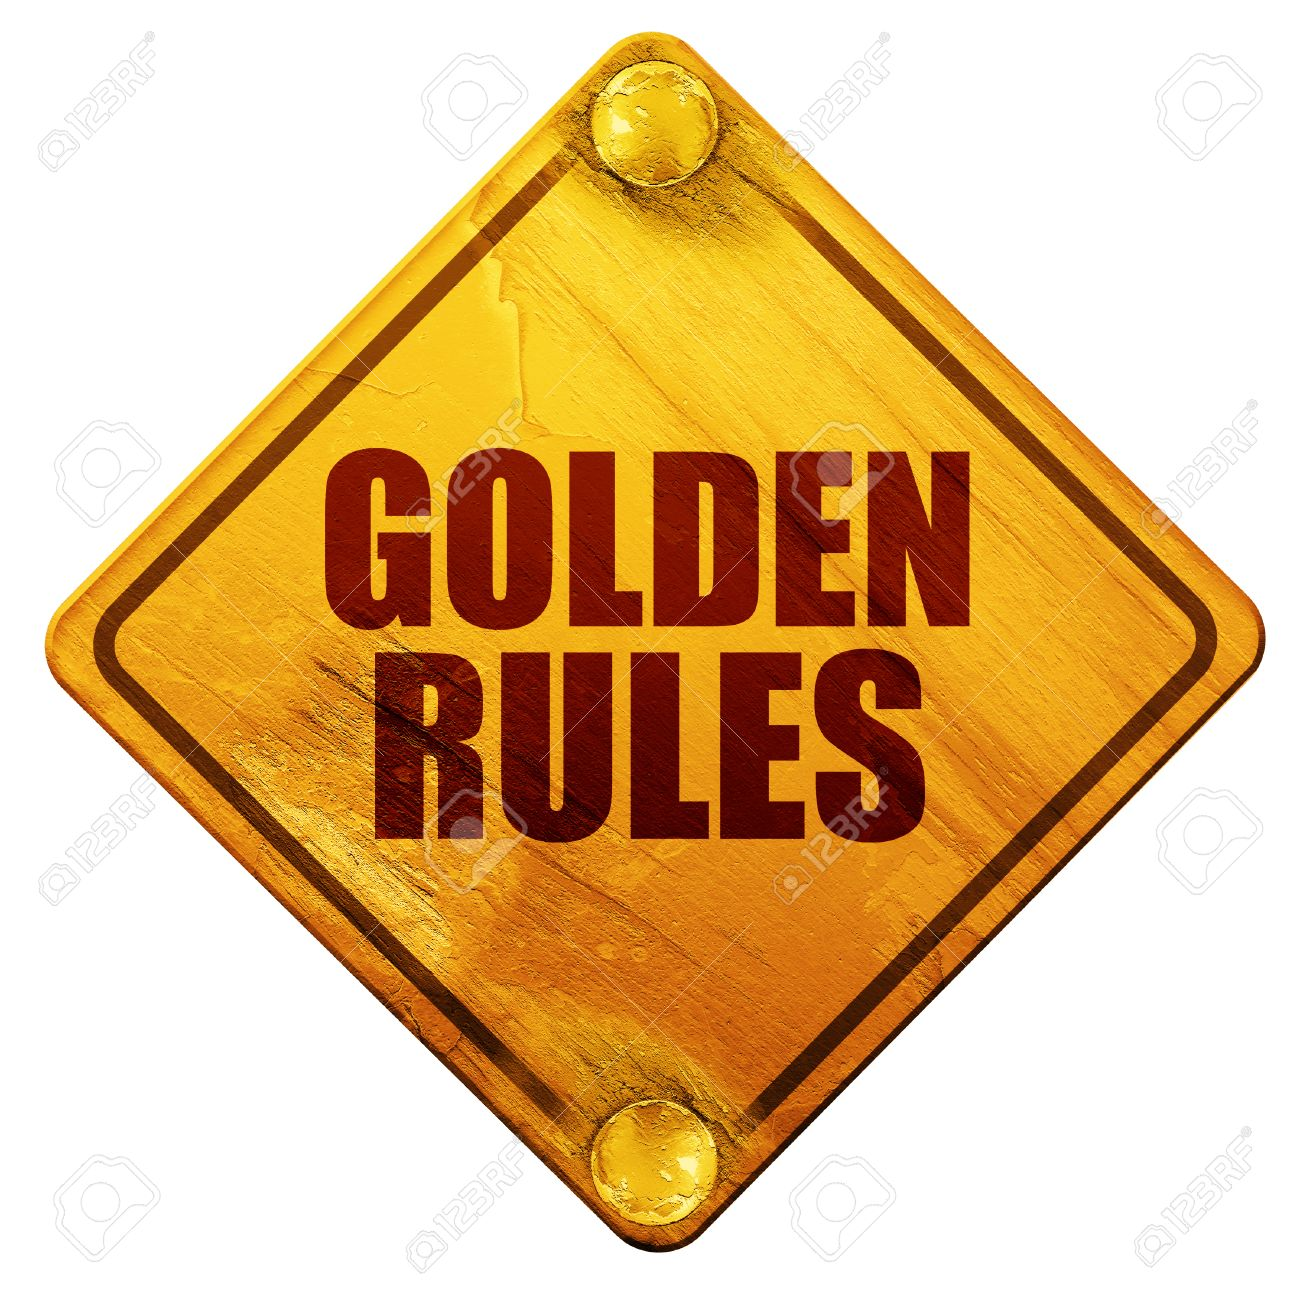 Golden Rules 3d Rendering Yellow Road Sign On A White Background